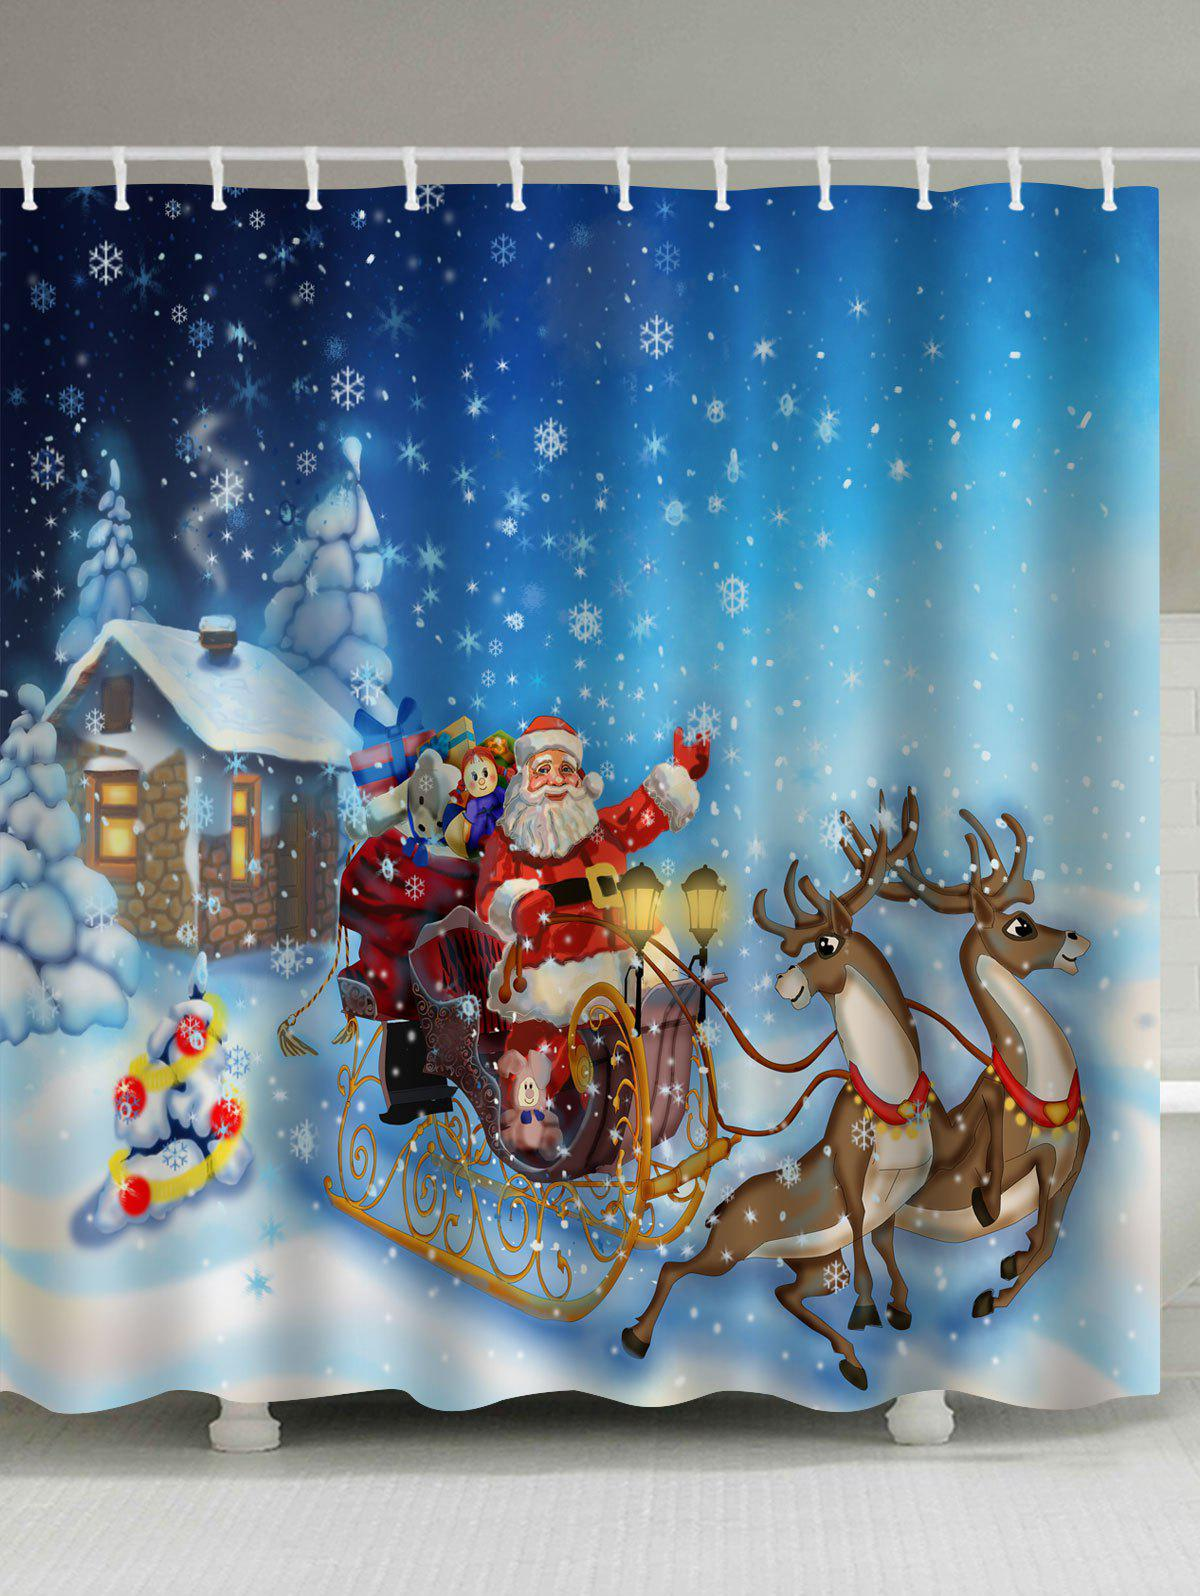 Christmas Snowy Santa Sleigh Print Waterproof Bathroom Shower CurtainHOME<br><br>Size: W71 INCH * L71 INCH; Color: COLORMIX; Products Type: Shower Curtains; Materials: Polyester; Pattern: Animal,Santa Claus; Style: Festival; Number of Hook Holes: W59 inch*L71 inch: 10; W71 inch*L71 inch: 12; W71 inch*L79 inch: 12; Package Contents: 1 x Shower Curtain 1 x Hooks (Set);